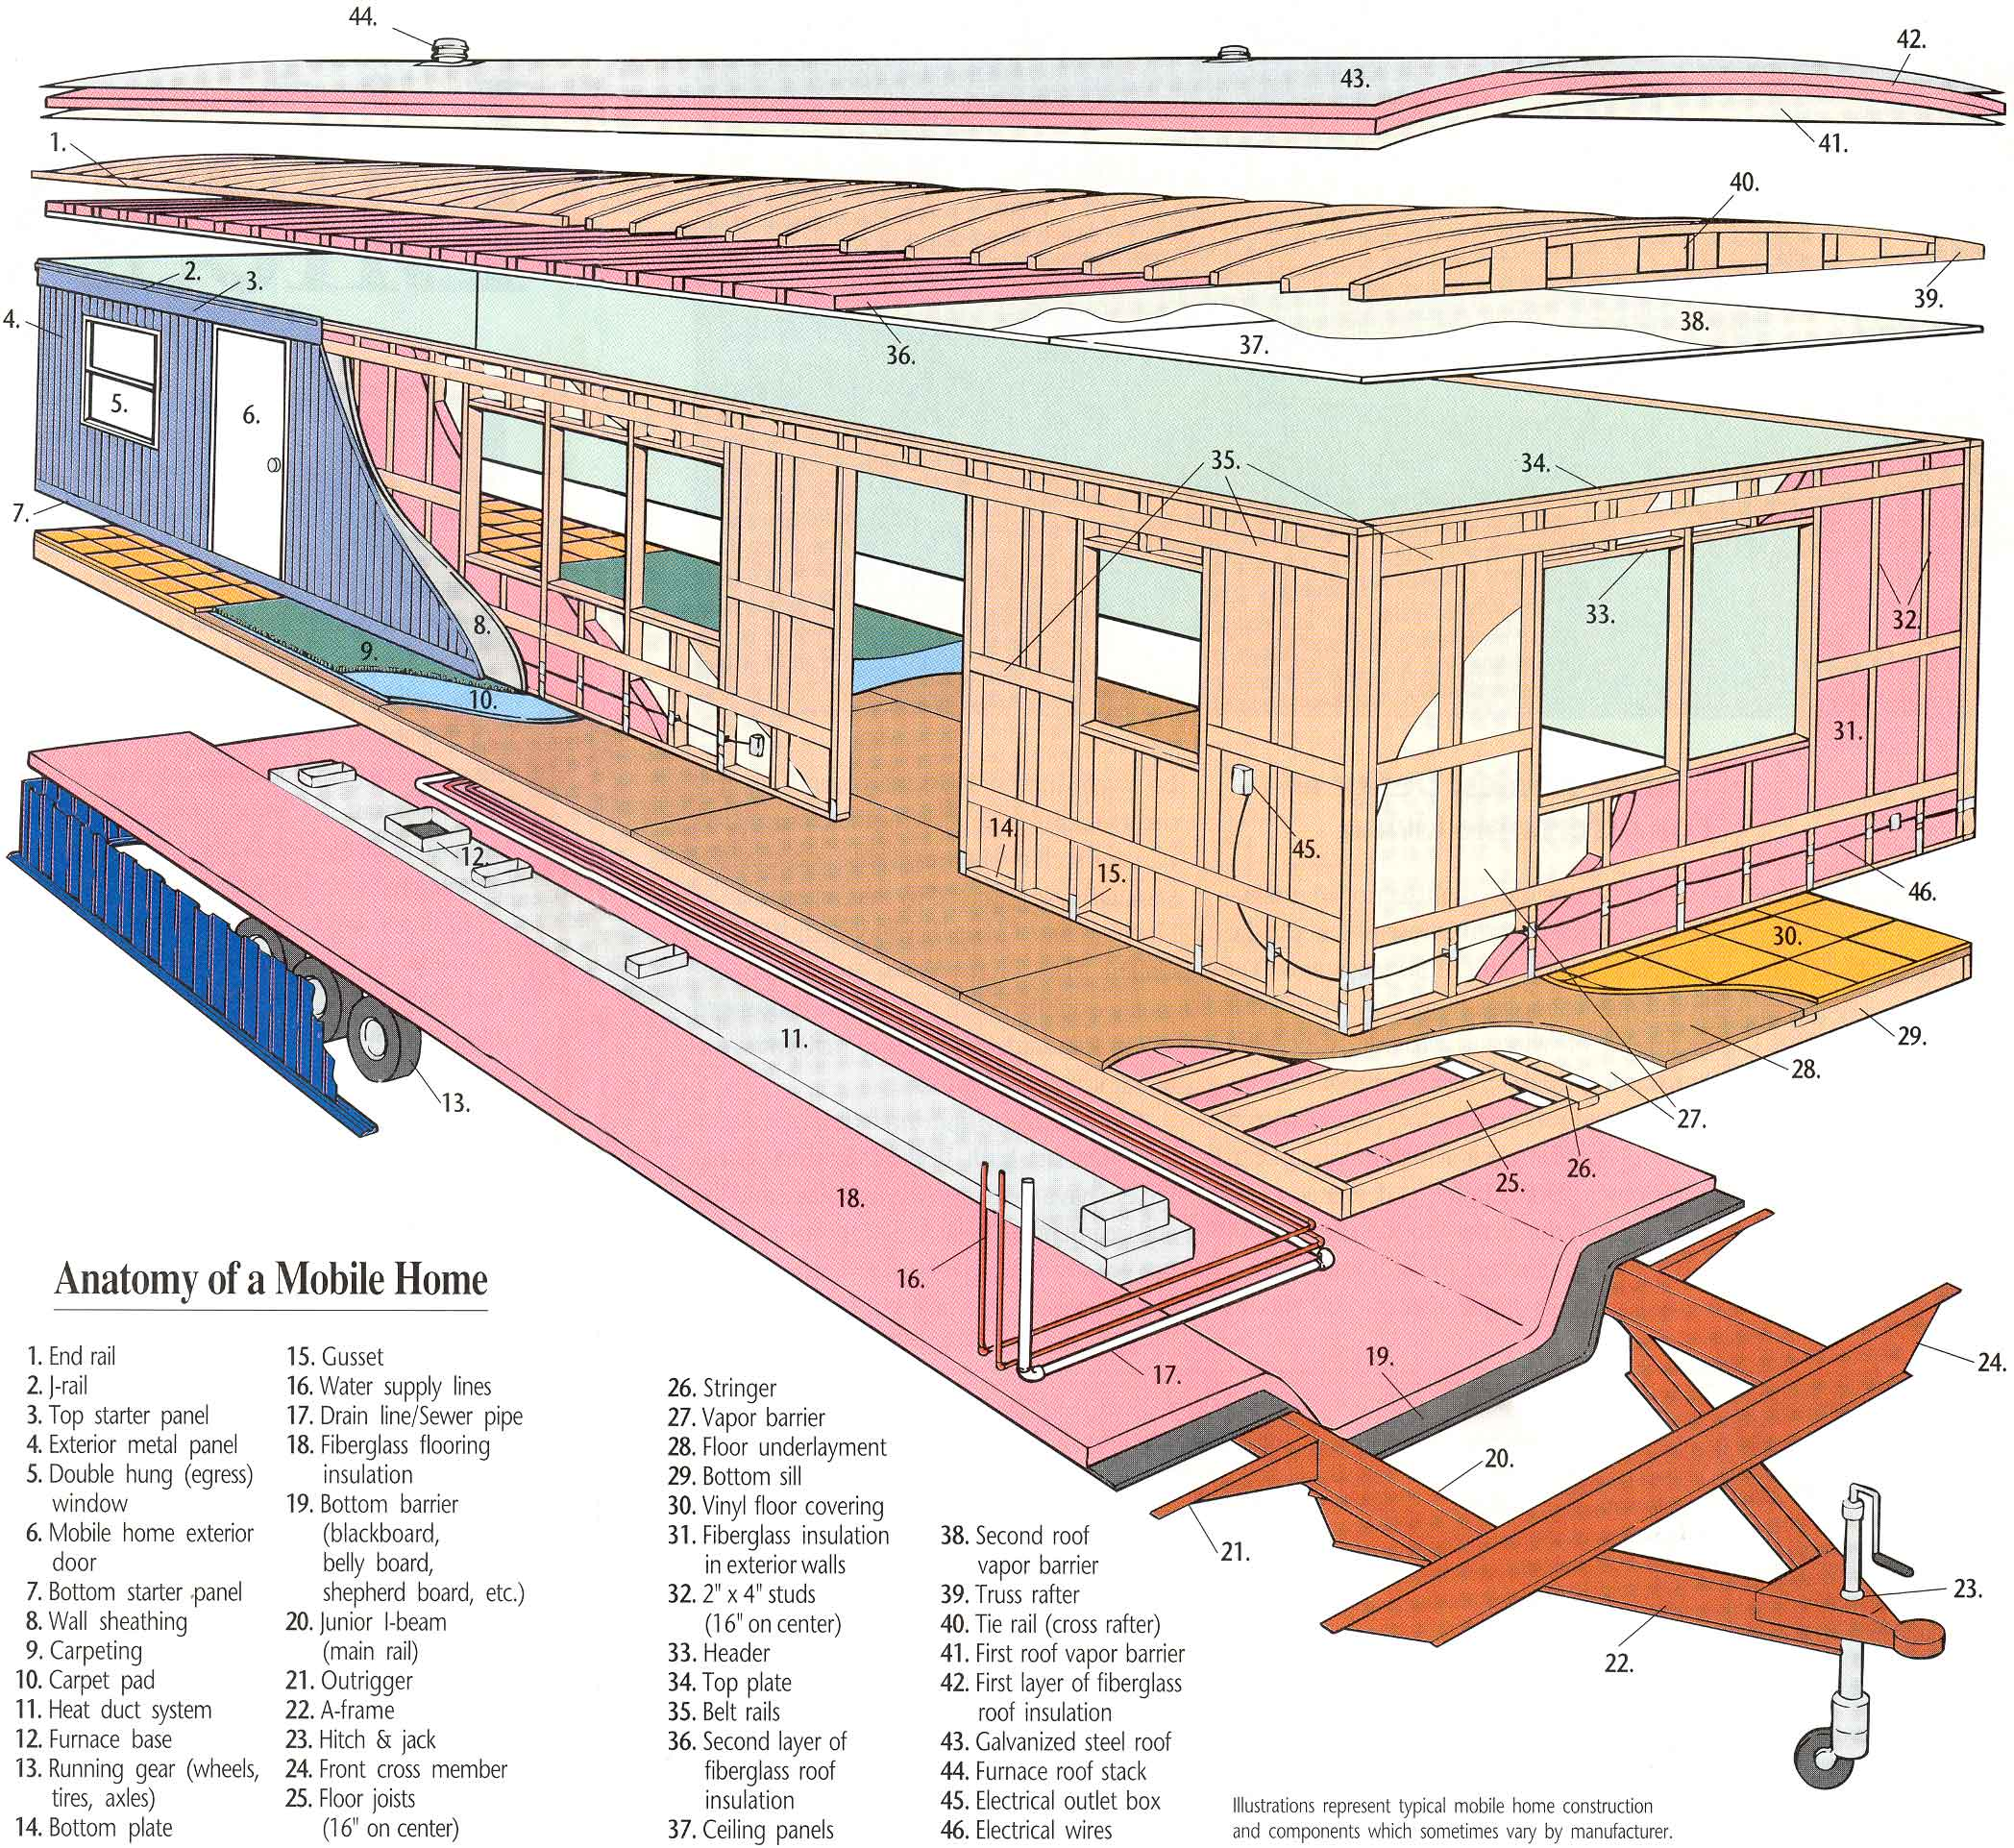 Brentwood Mobile Home Wiring Diagram Schematic Diagrams Structured System Simple